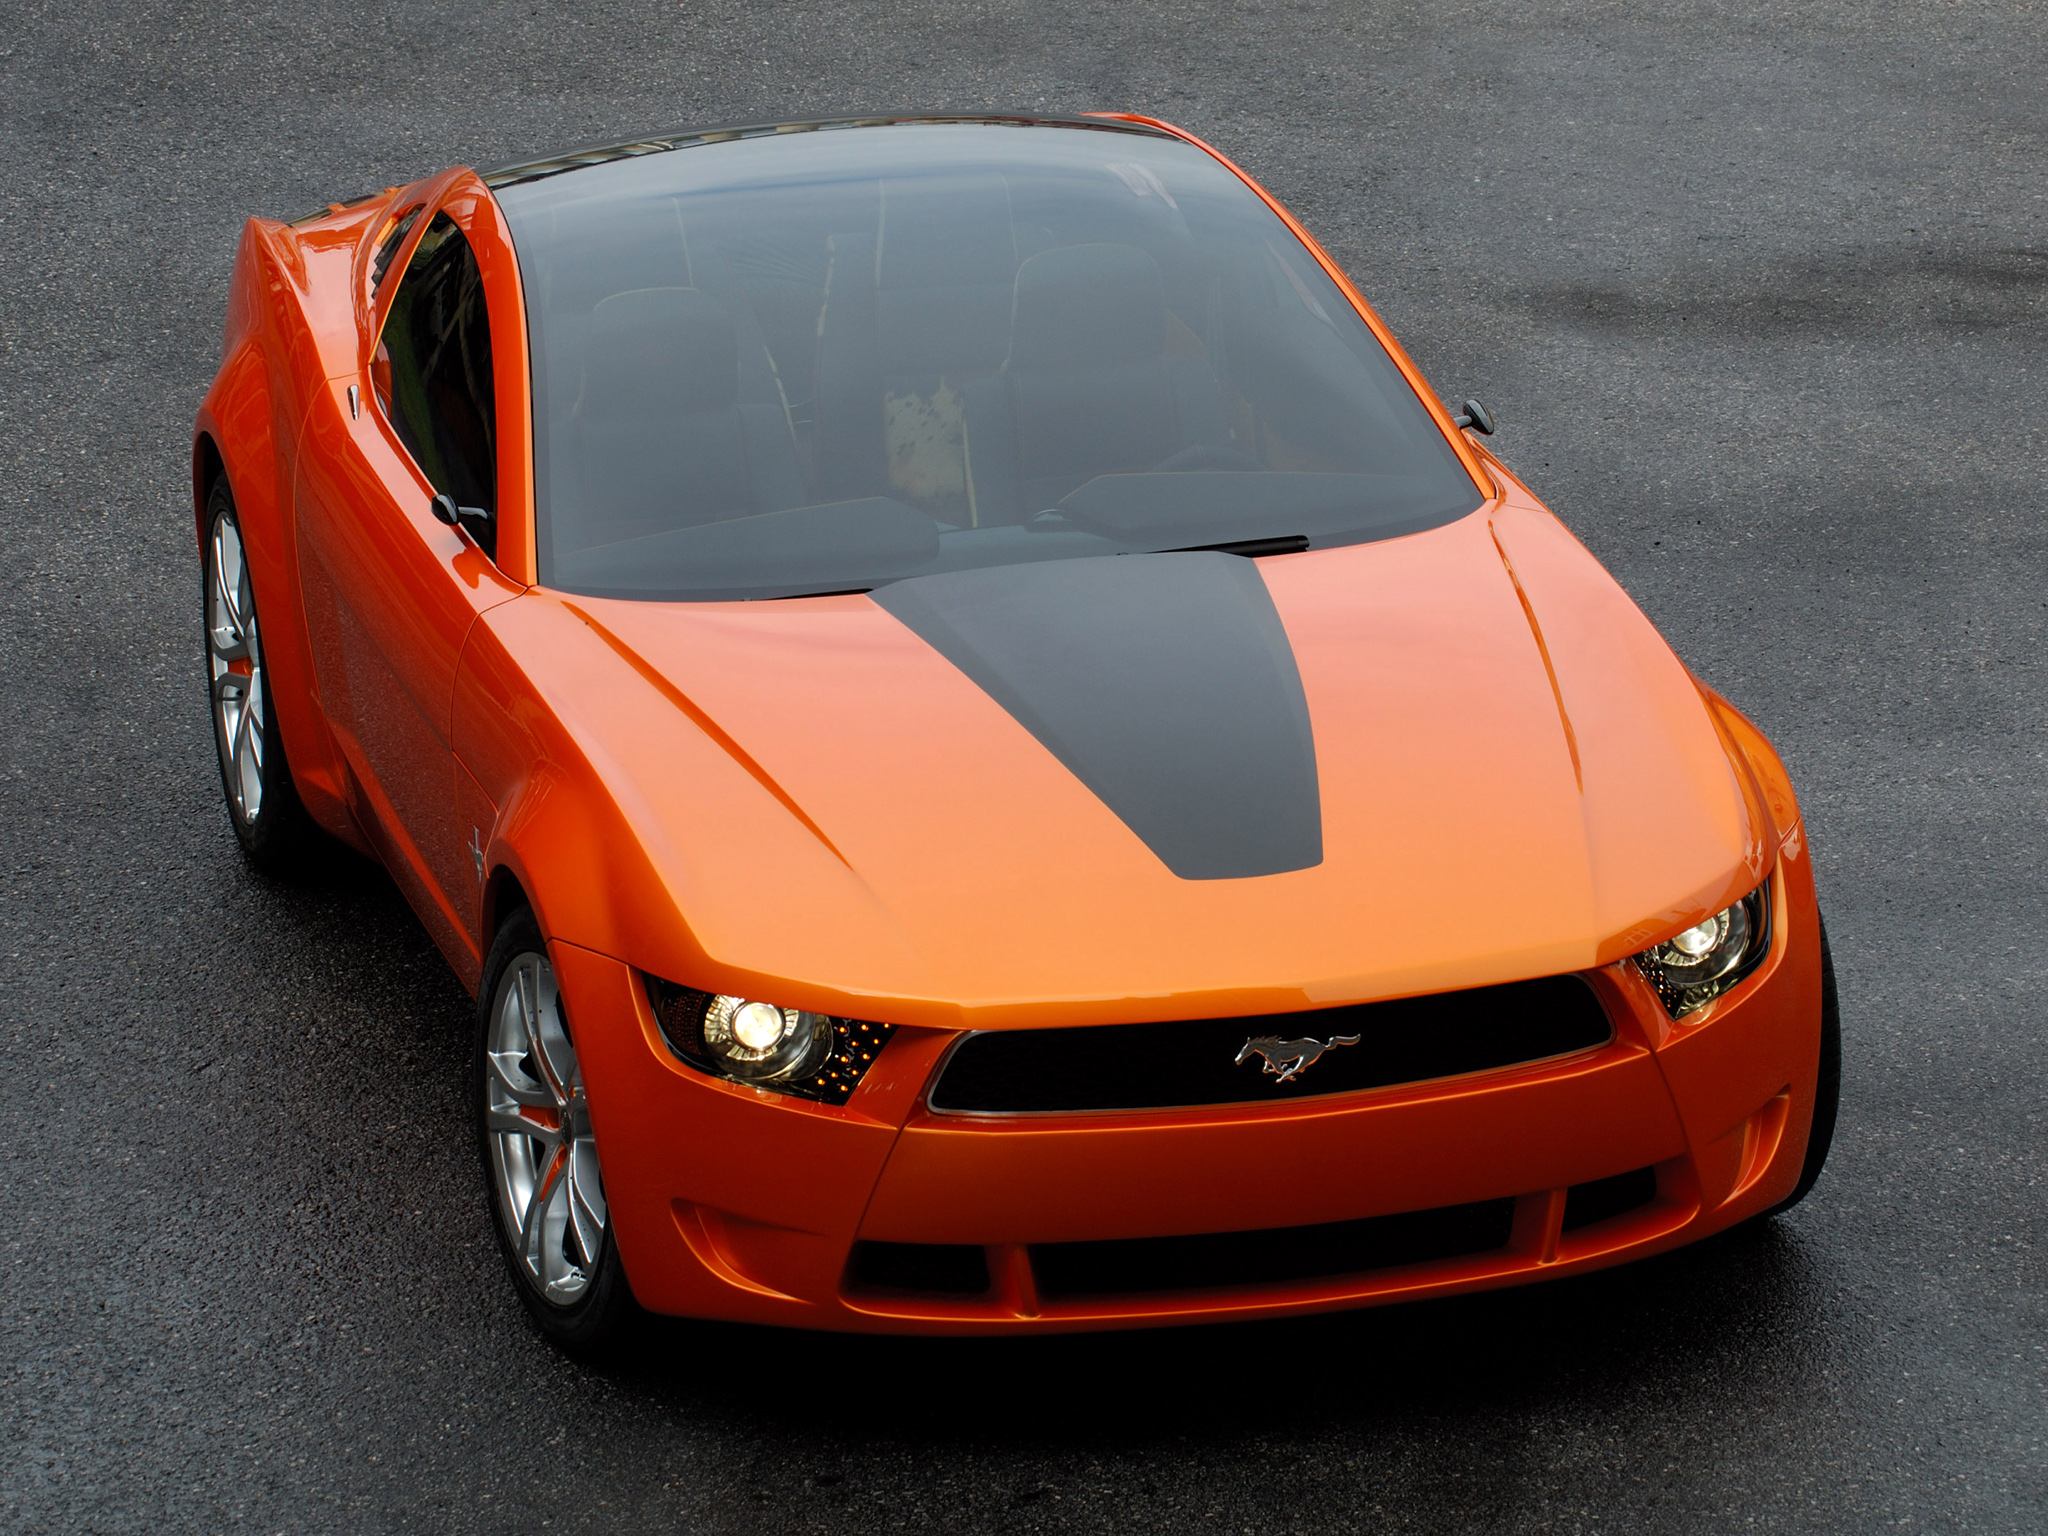 2006 Ford Mustang Giugiaro Concept photo - 3